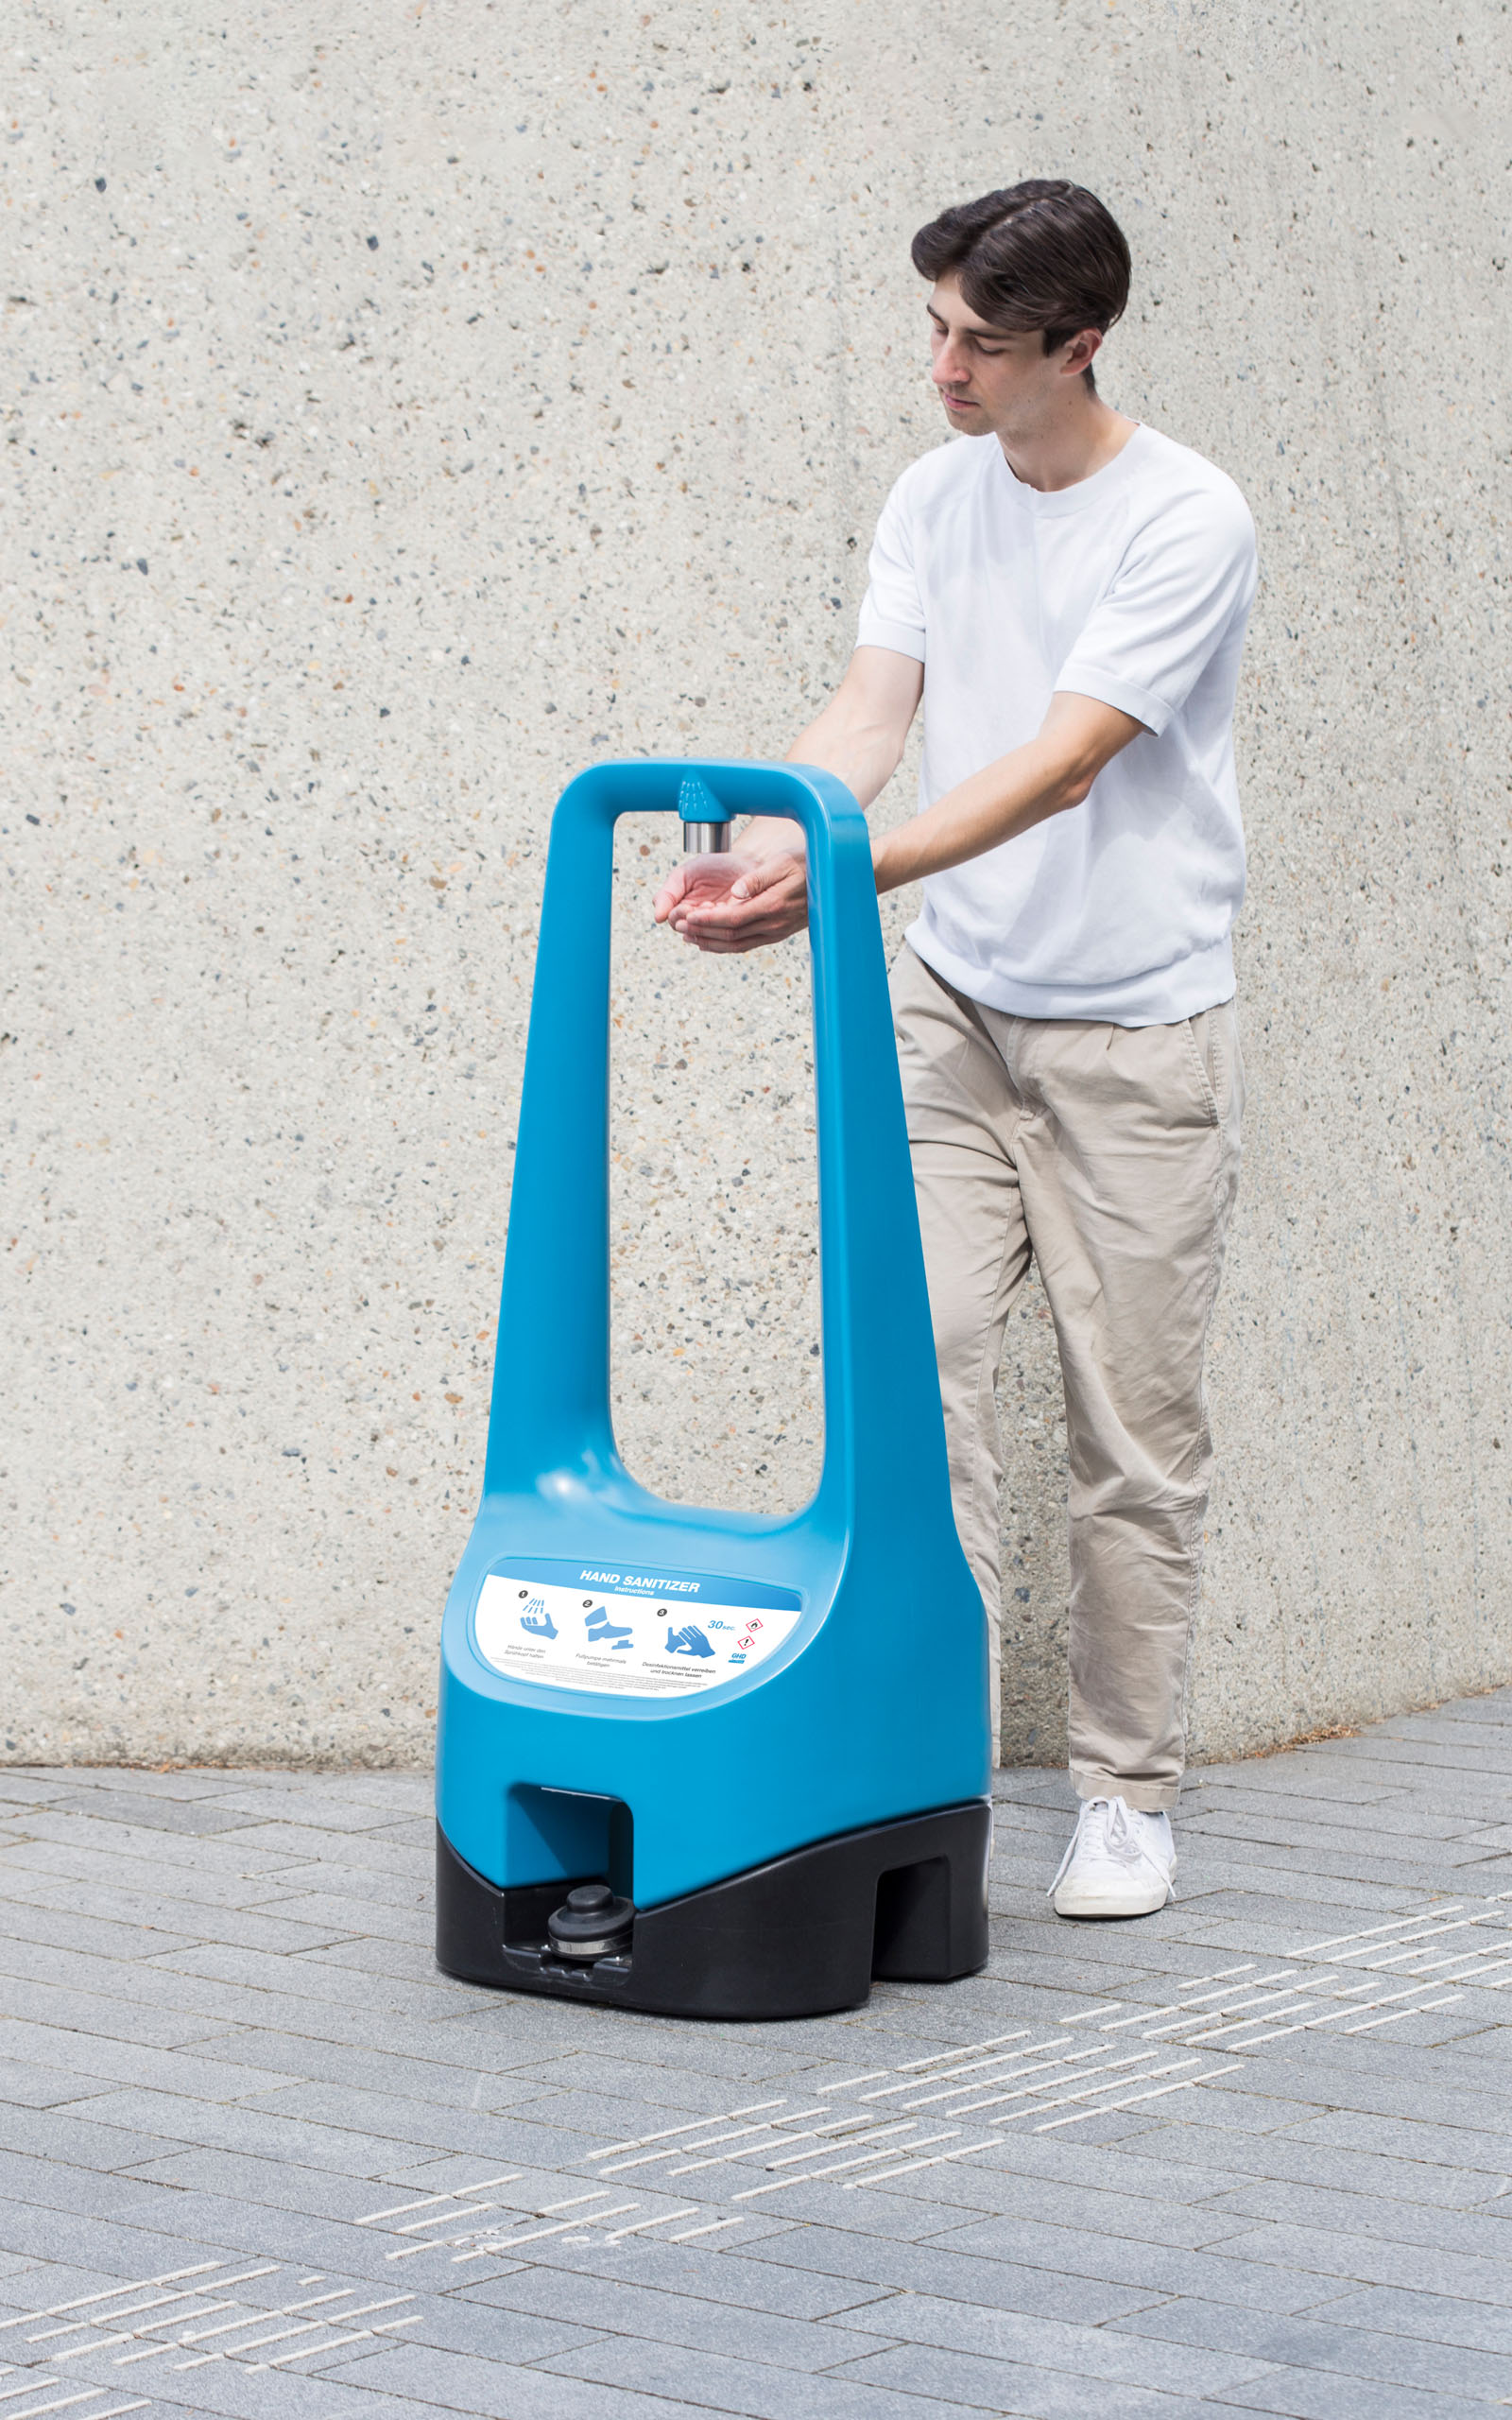 A person shown from the front is using a foot pump to enable a Toi Care hand sanitizer standing outdoors.